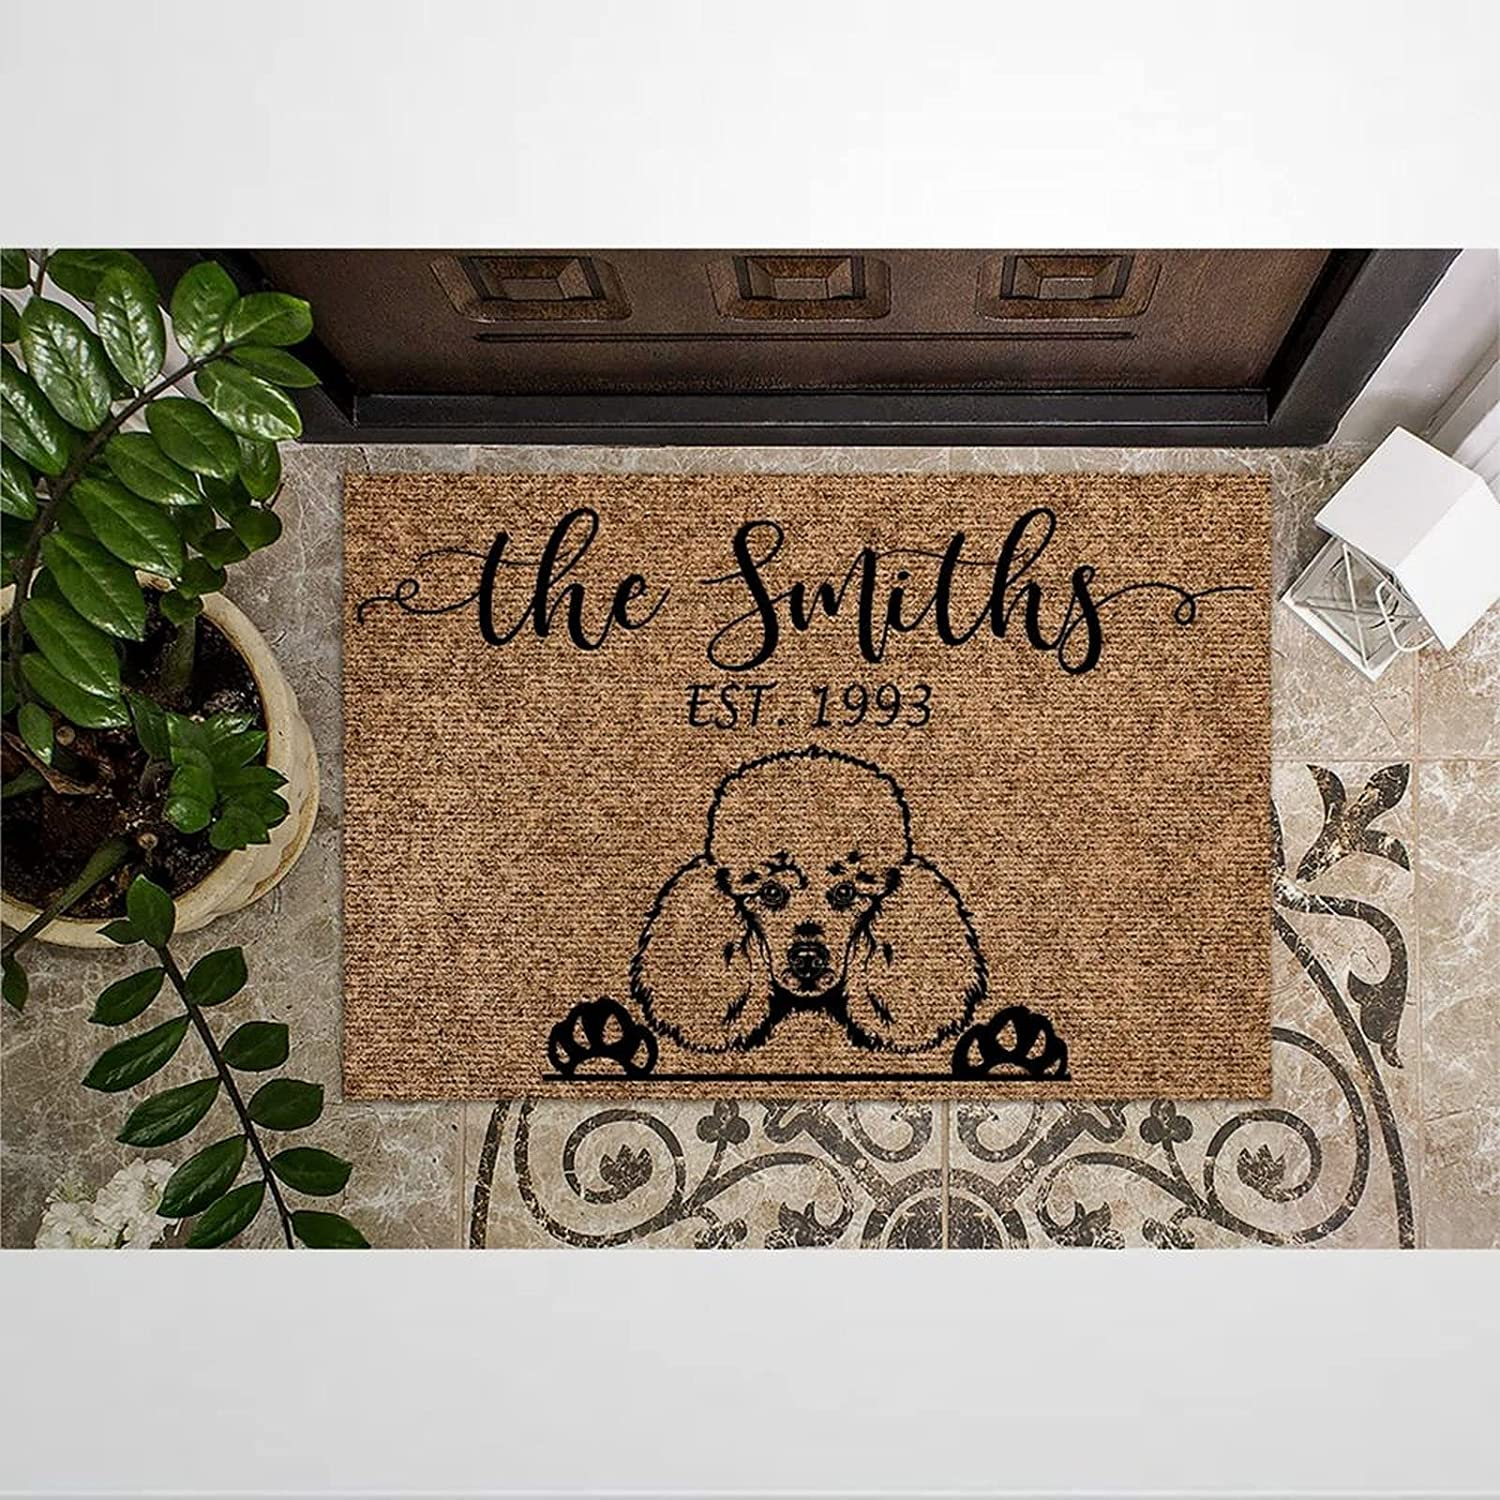 Poodle Personalized Coir Now on sale In a popularity Doormat Rustic for Door Mats Welcome In